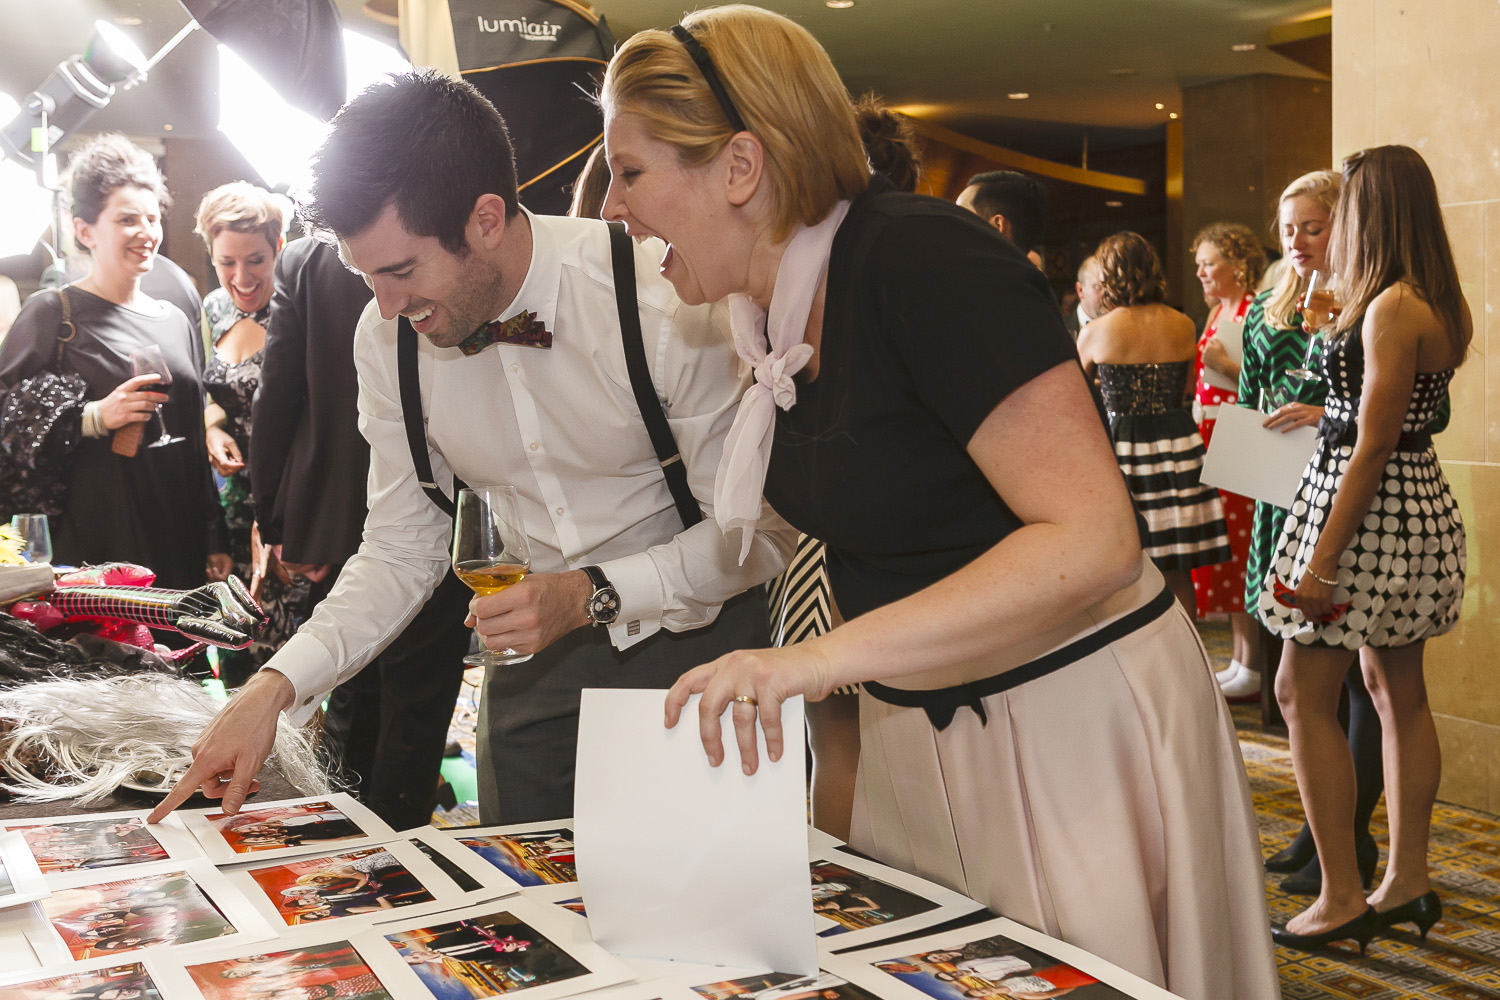 Couple looking at photos at event